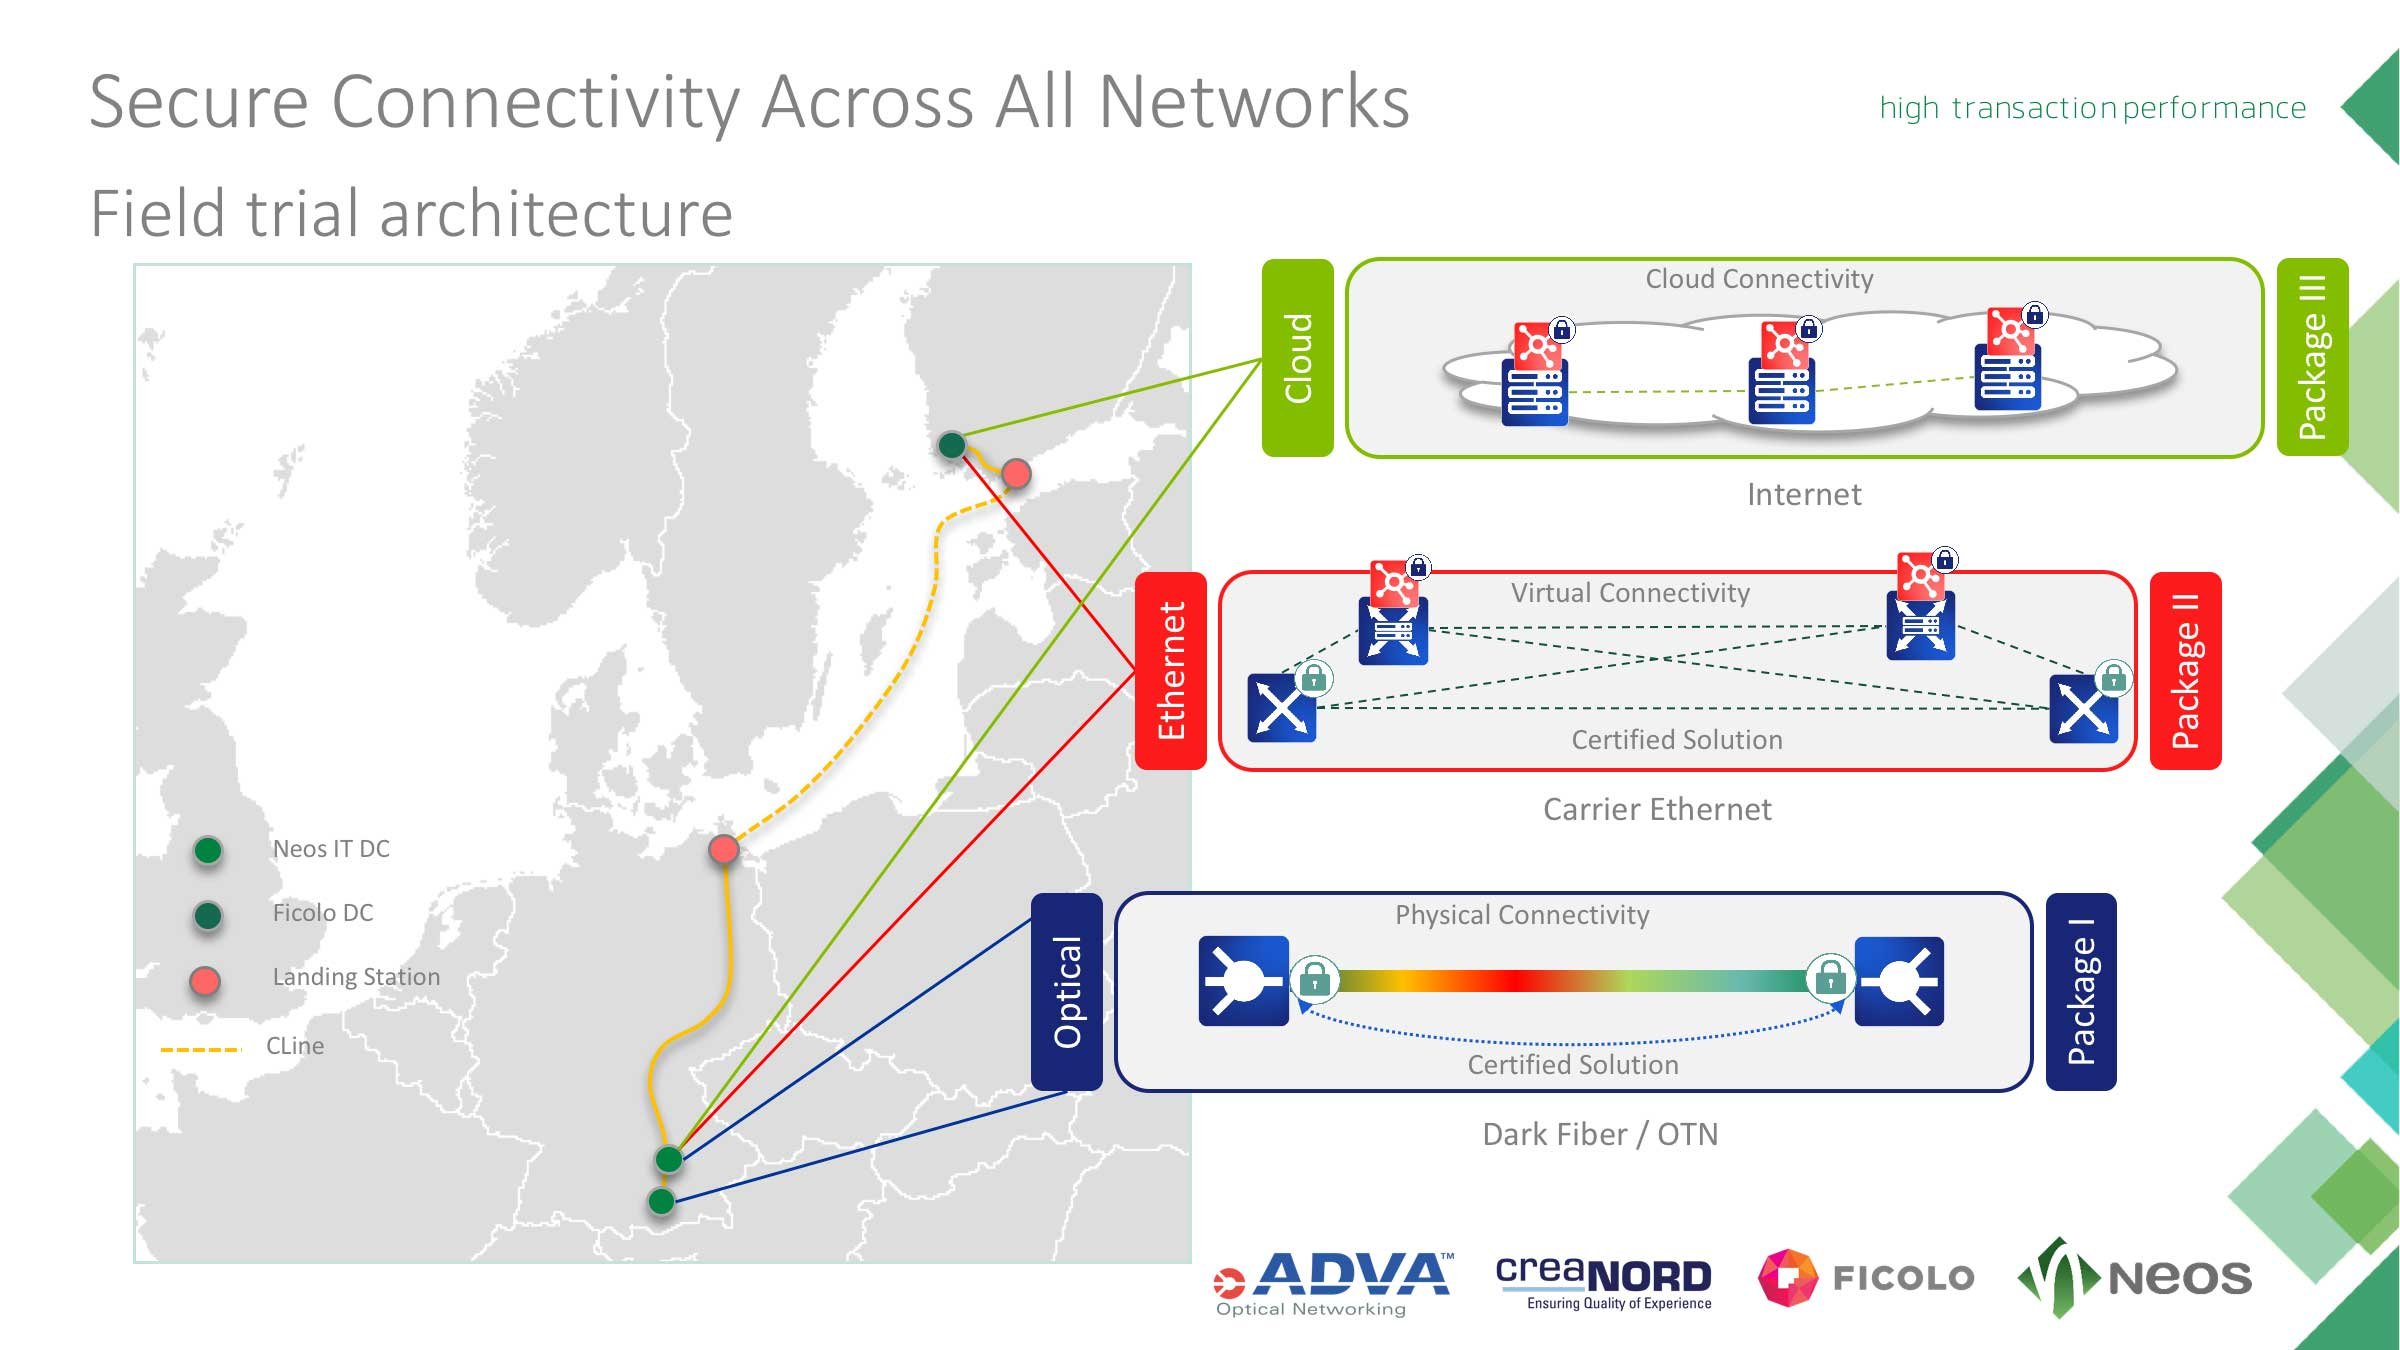 Neos IT Services Powerpoint Chart, Secure Connectivity Across All Networks